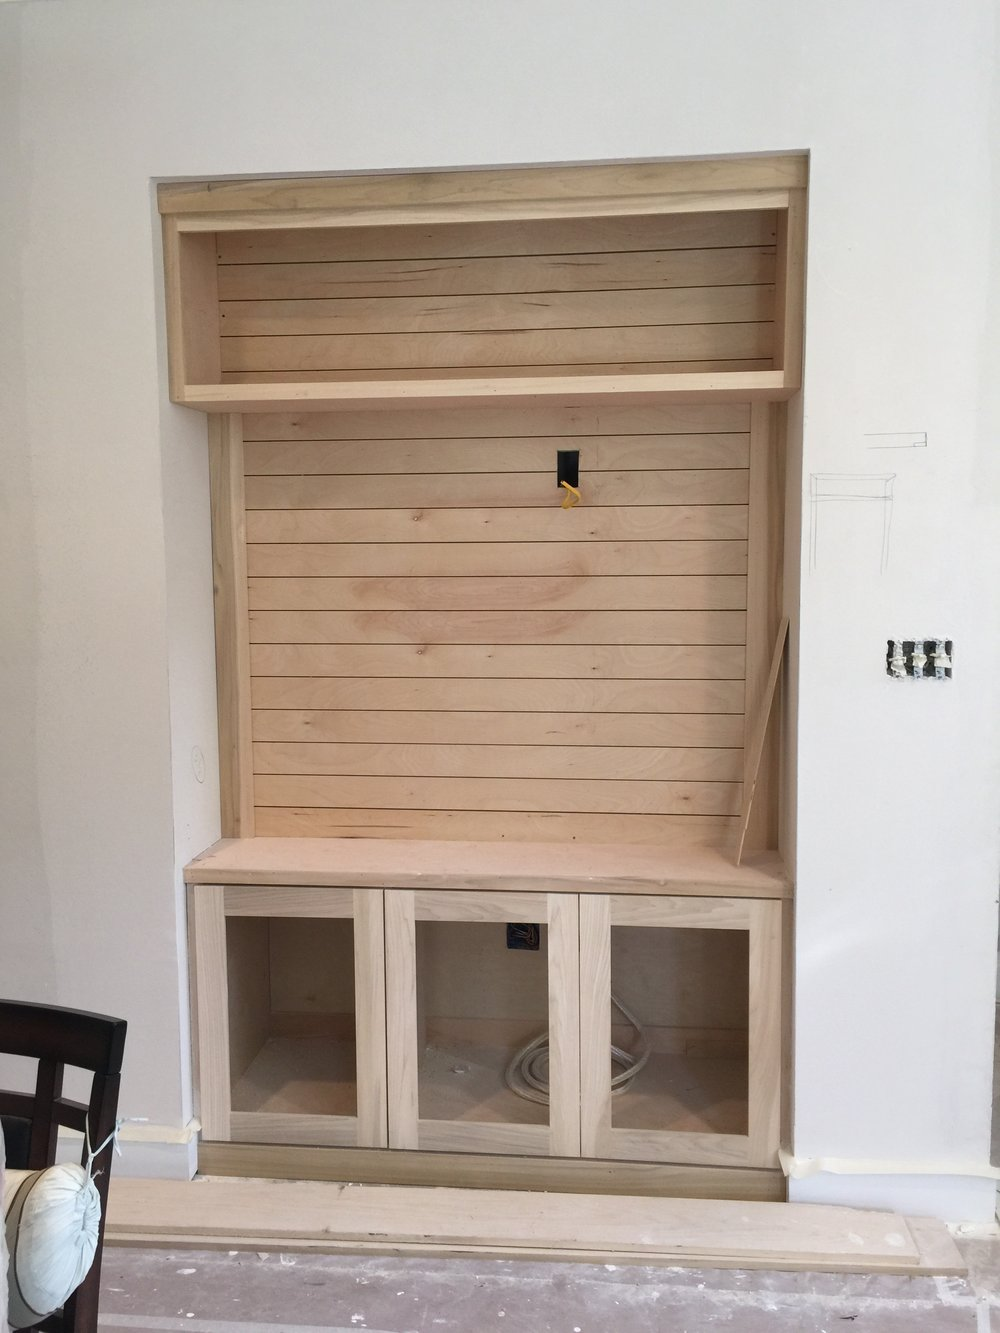 TV / Media cabinet under construction